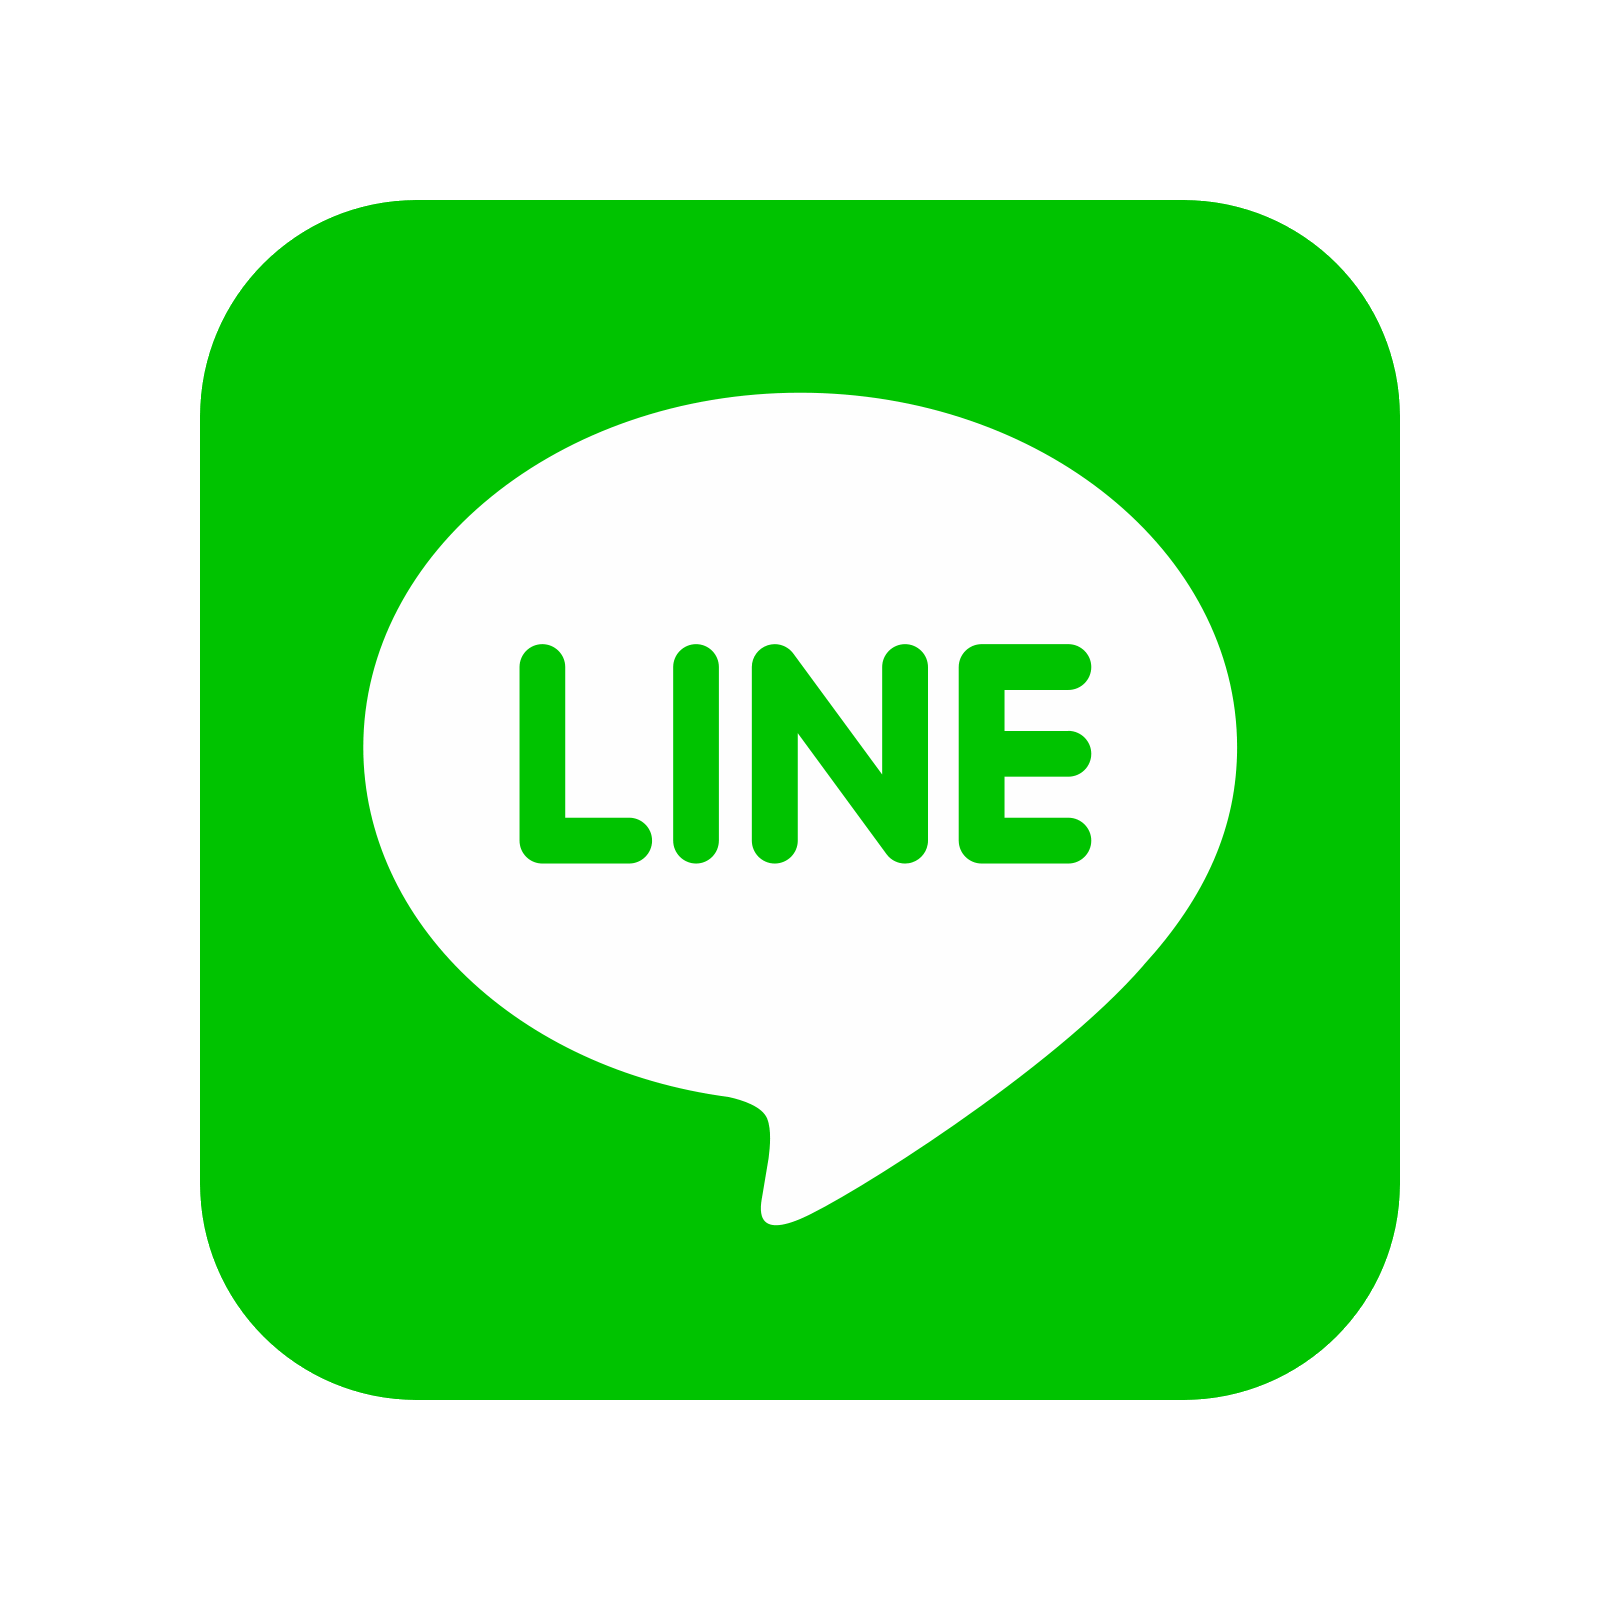 Line Png - LINE icon